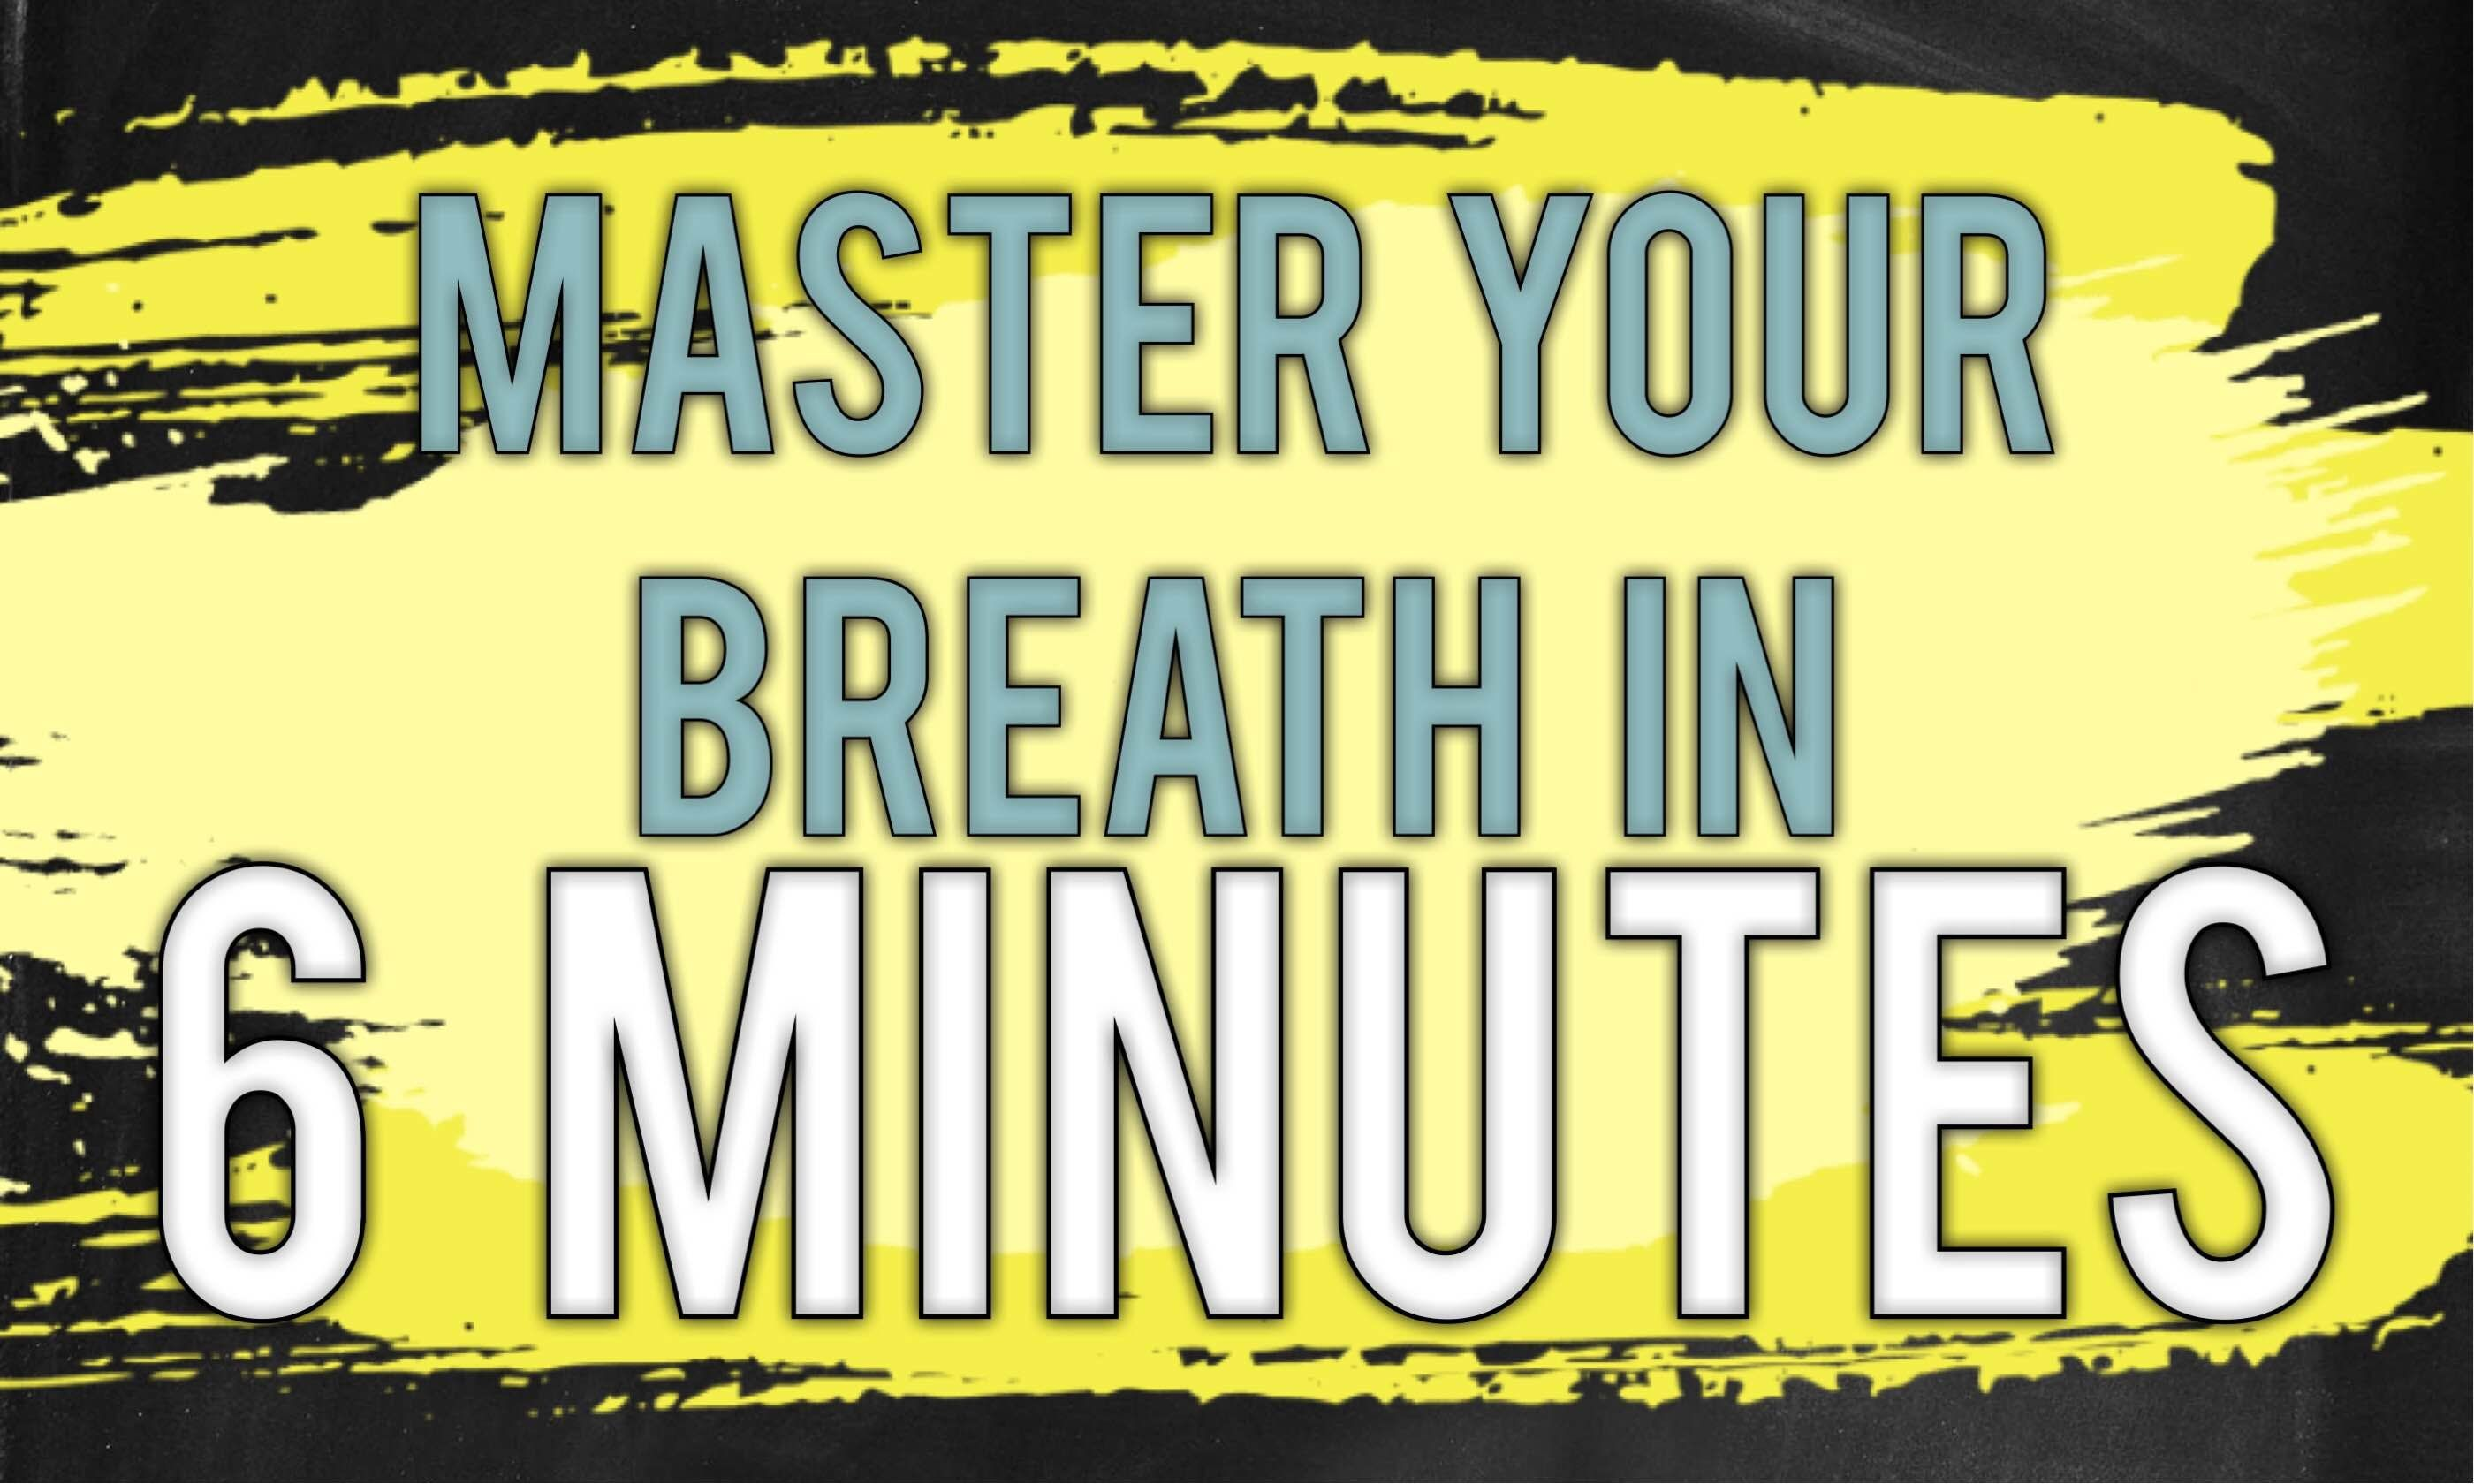 Master Your Breath In 6 Minutes